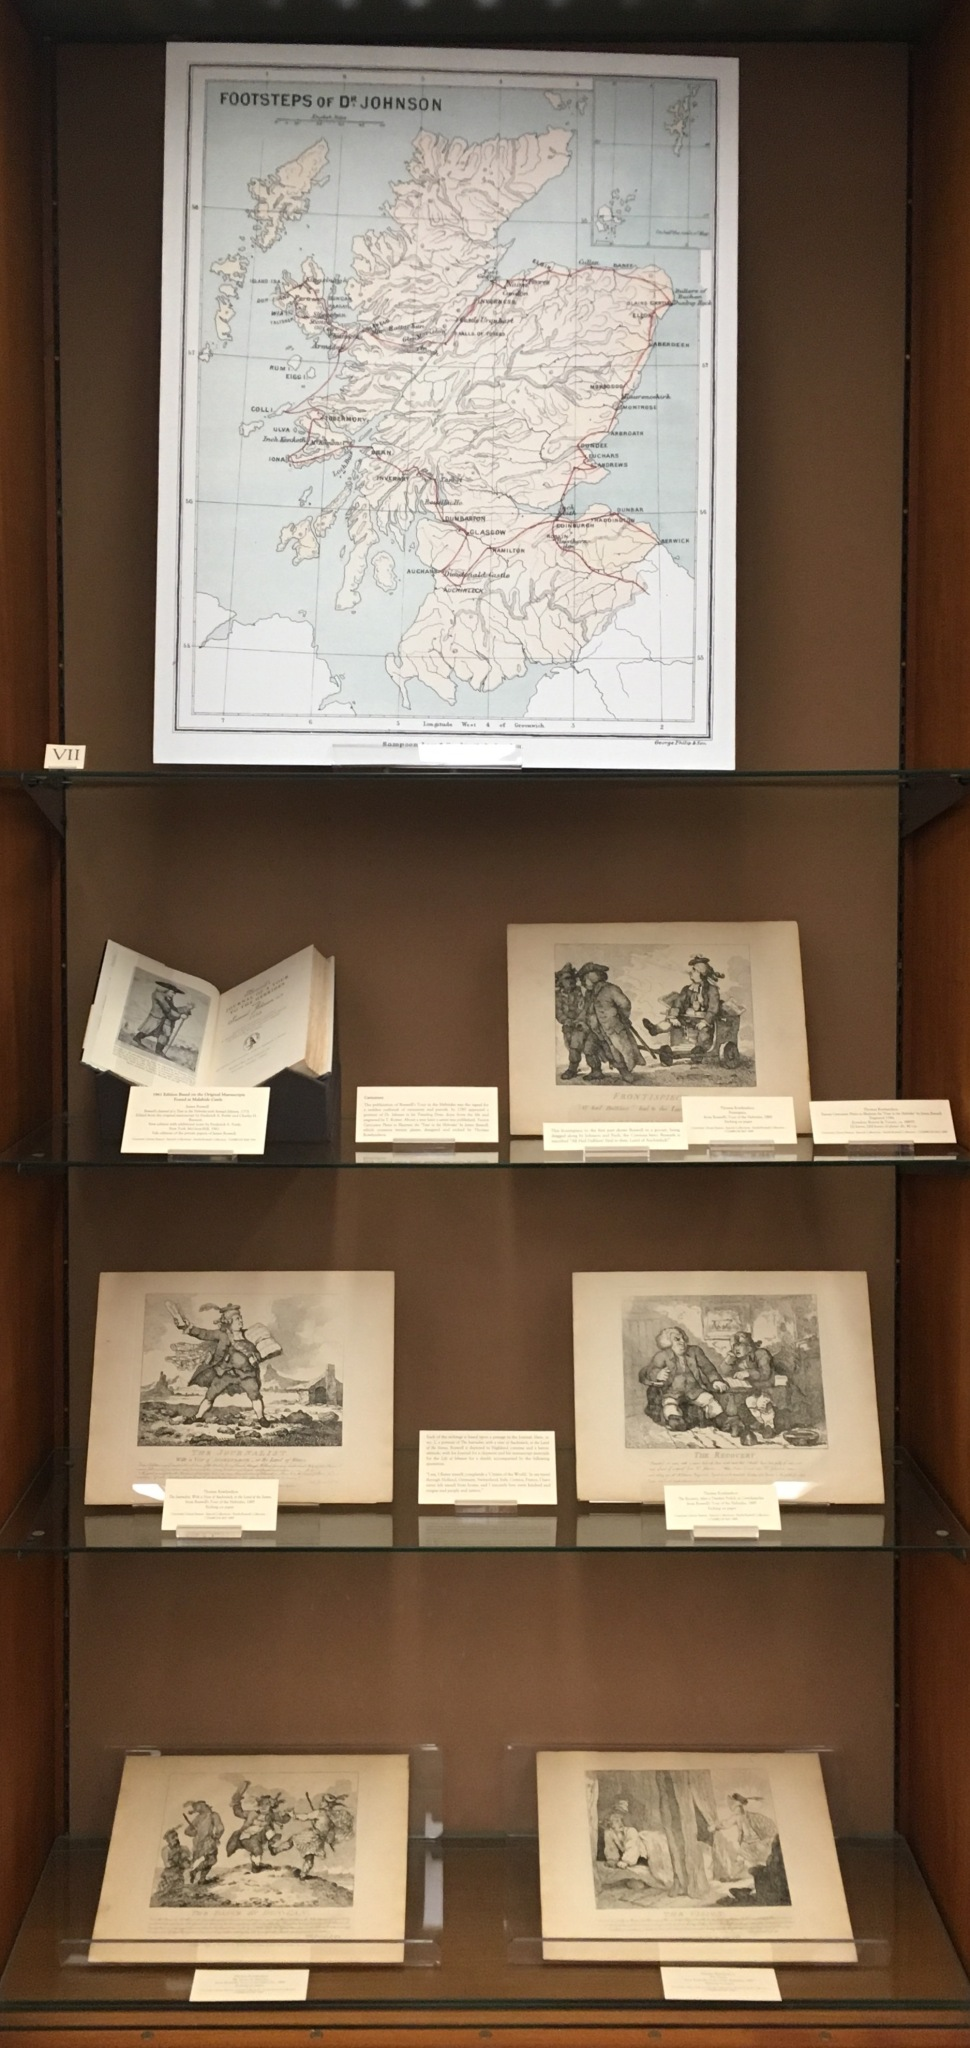 A display case featuring a large map of Scotland and the books, supplementary texts, and images featured on this page.